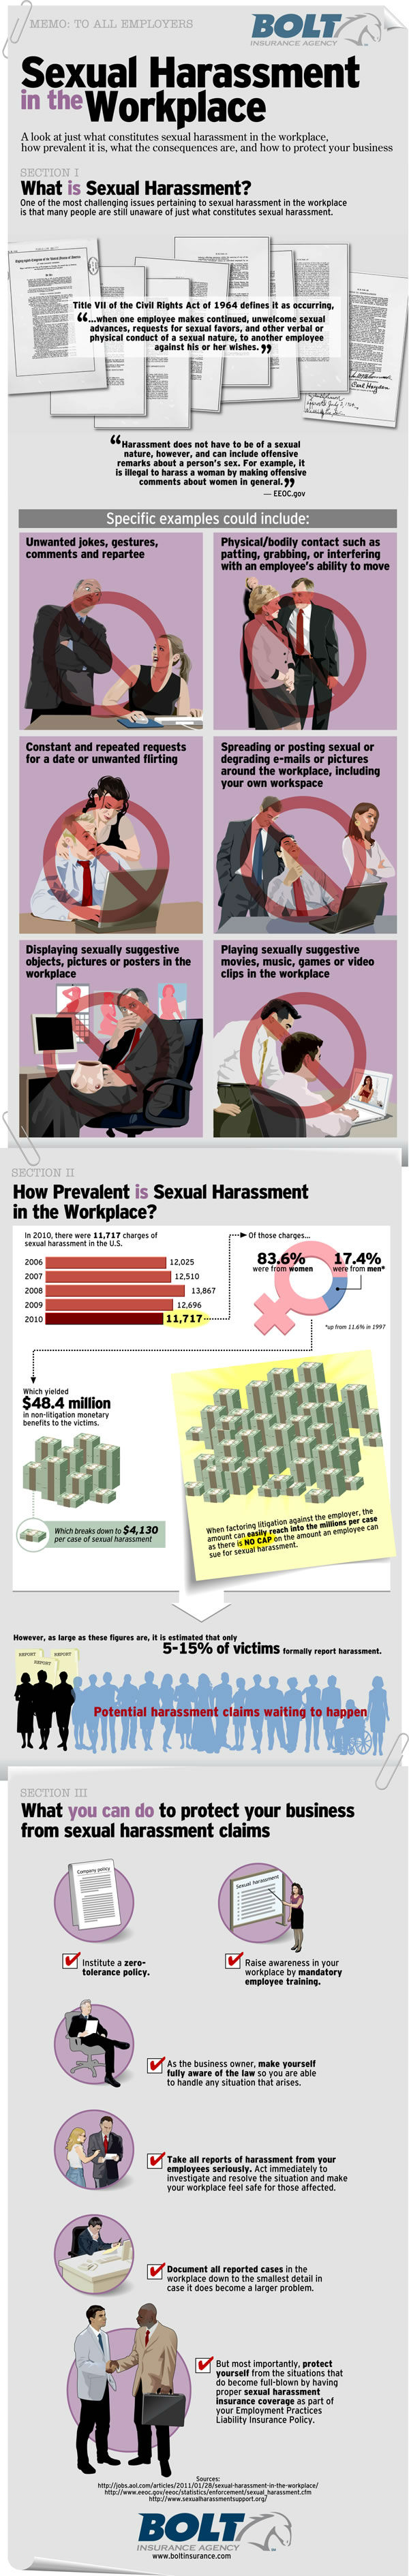 Sexual Harassment in the Workplace [Infographic]